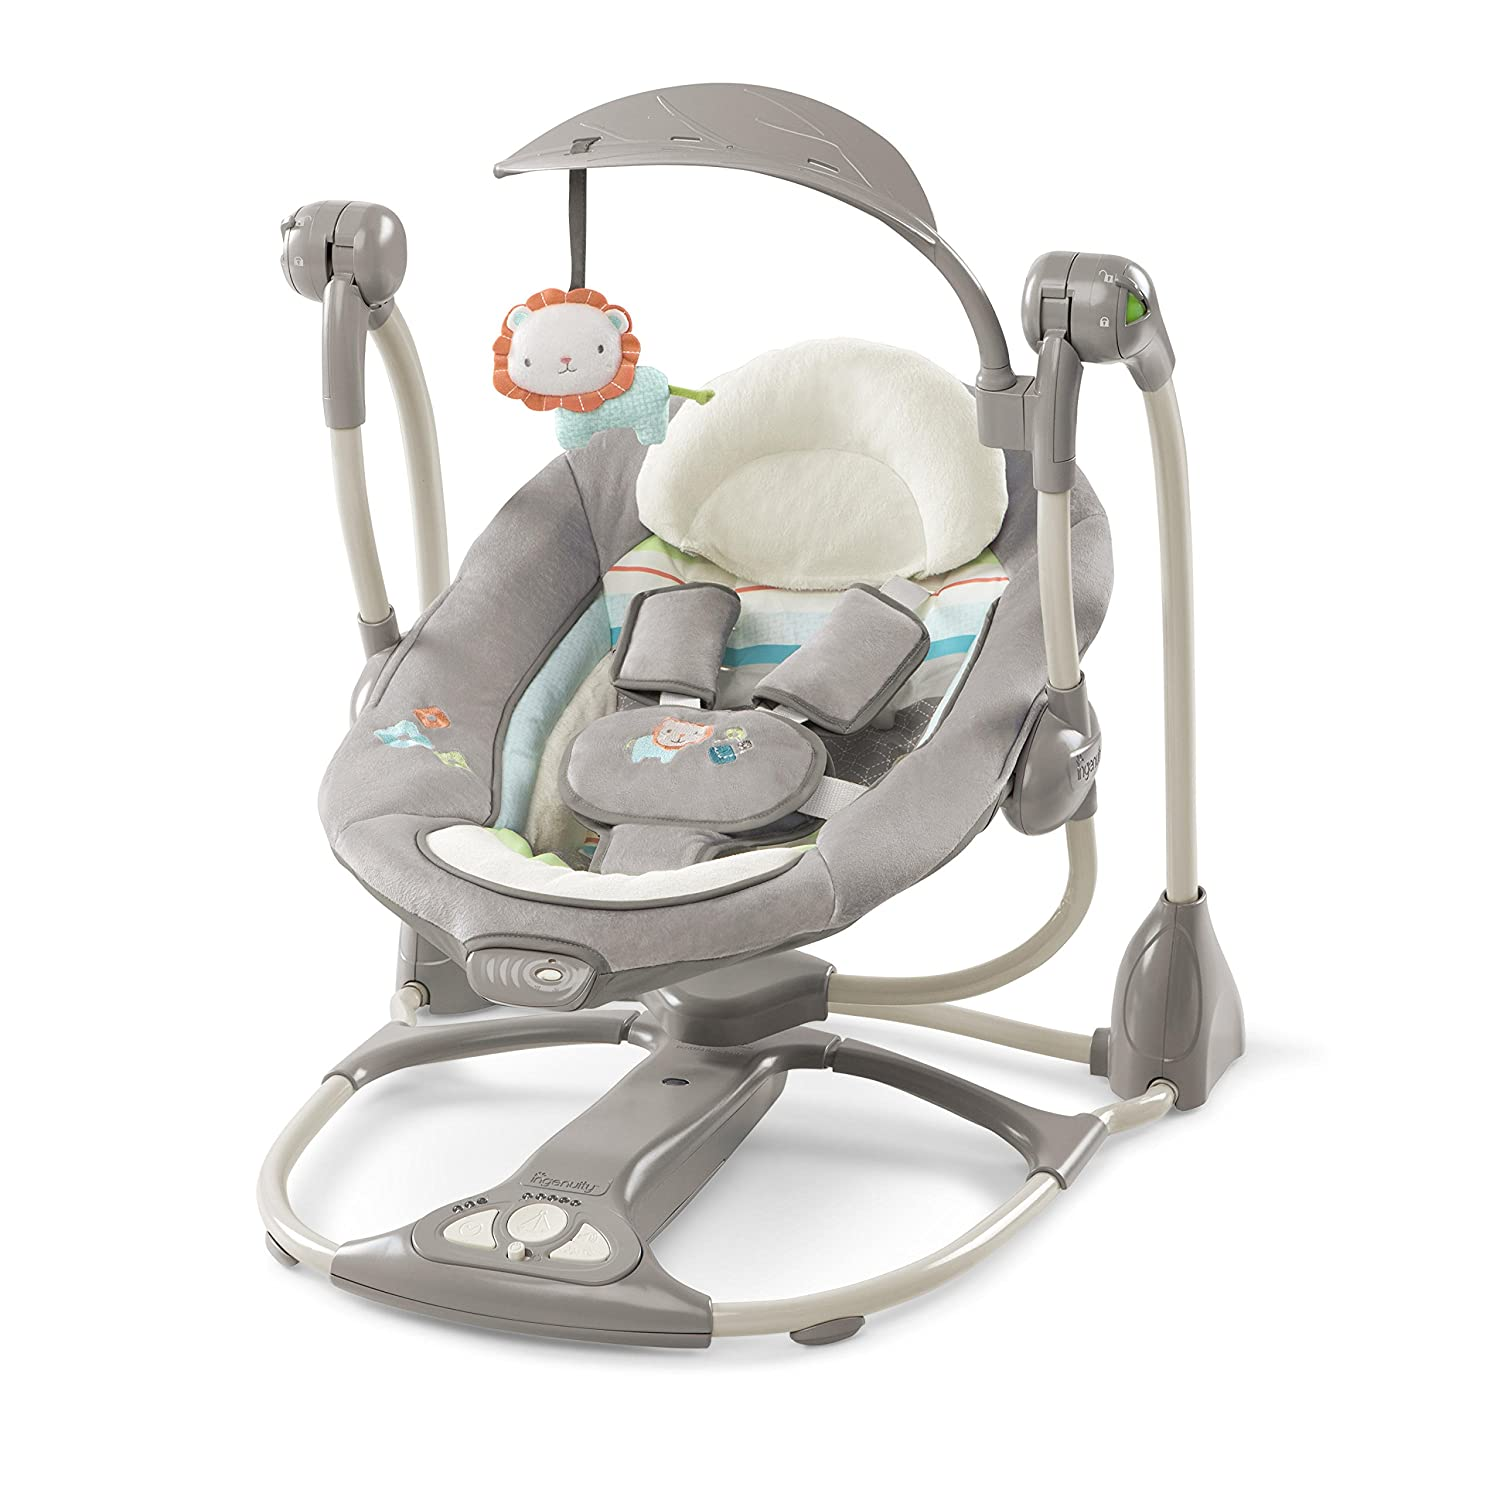 baby swings chair bouncers